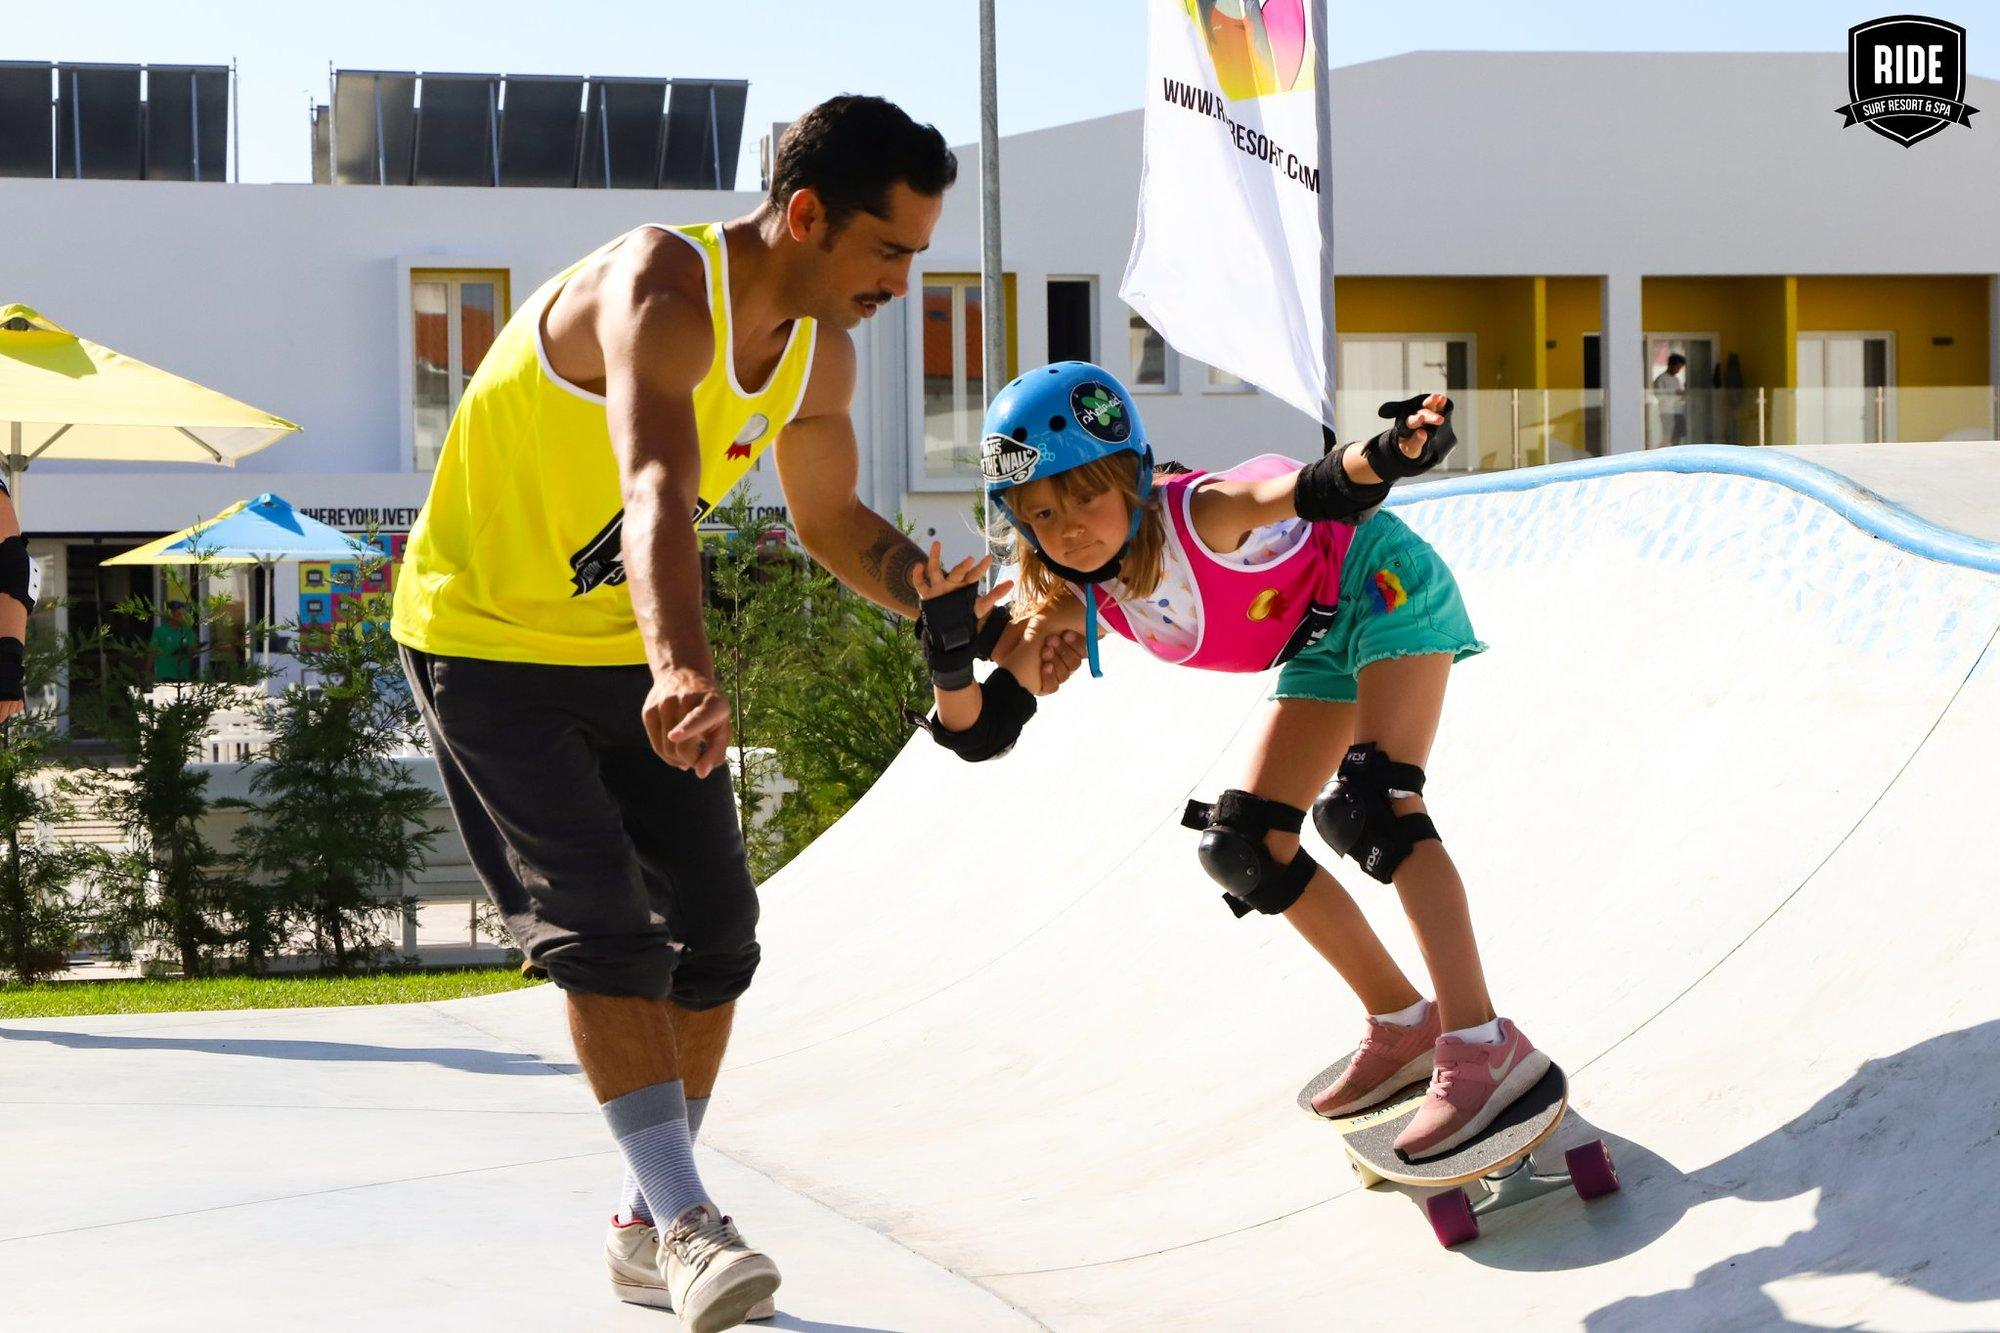 500/Photos/academies/Skate/hotel-ride-surf-spa-peniche-skate-skatepark-cours-prive-enfant-3-jpg.jpg